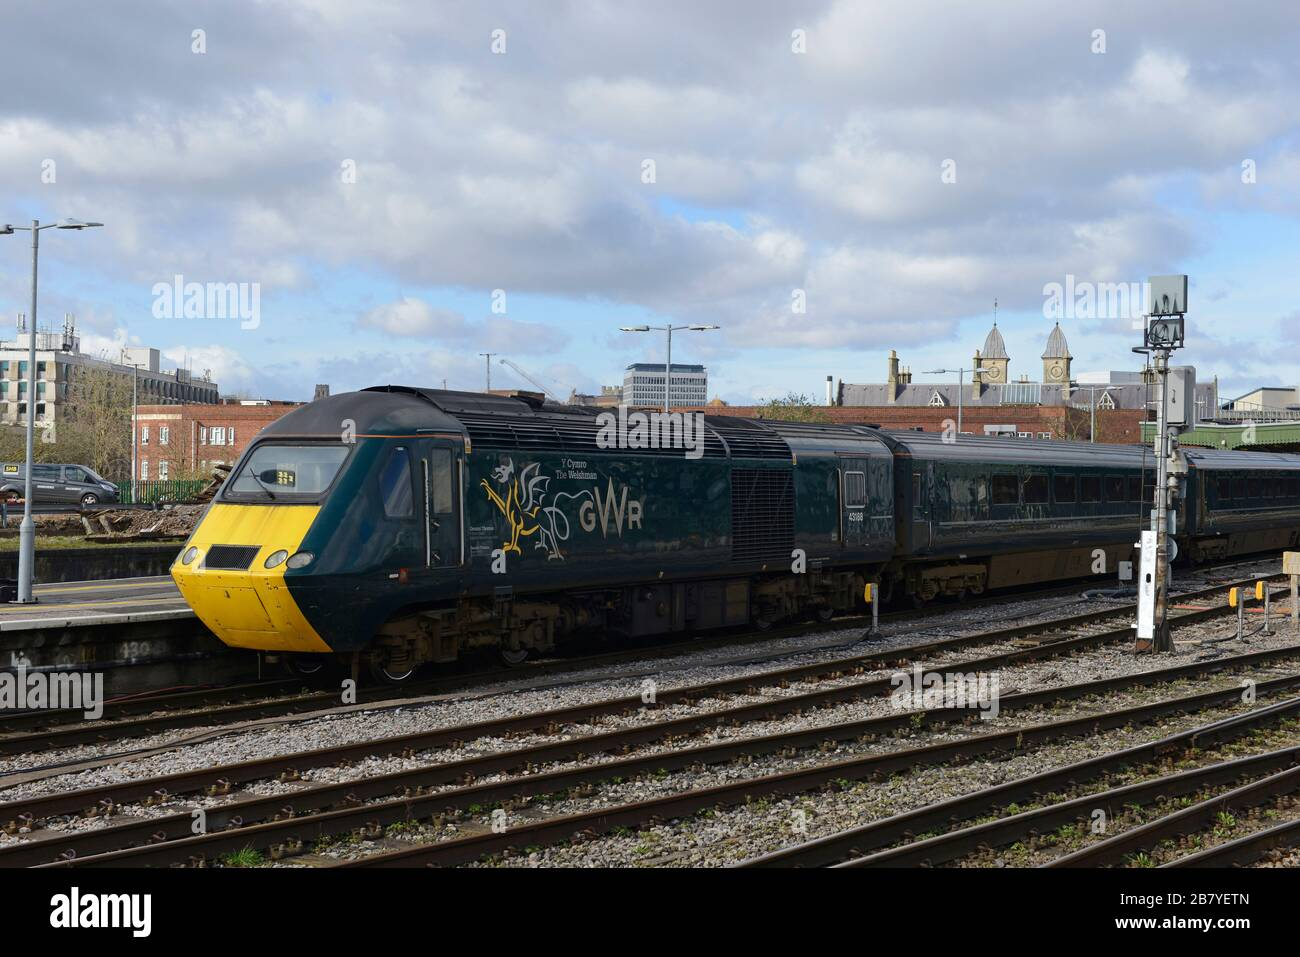 "A repurposed HST 125 train named for ""The Welshman"", Geraint Thomas, on a local service to Taunton at Bristol Temple Meads station, UK Stock Photo"